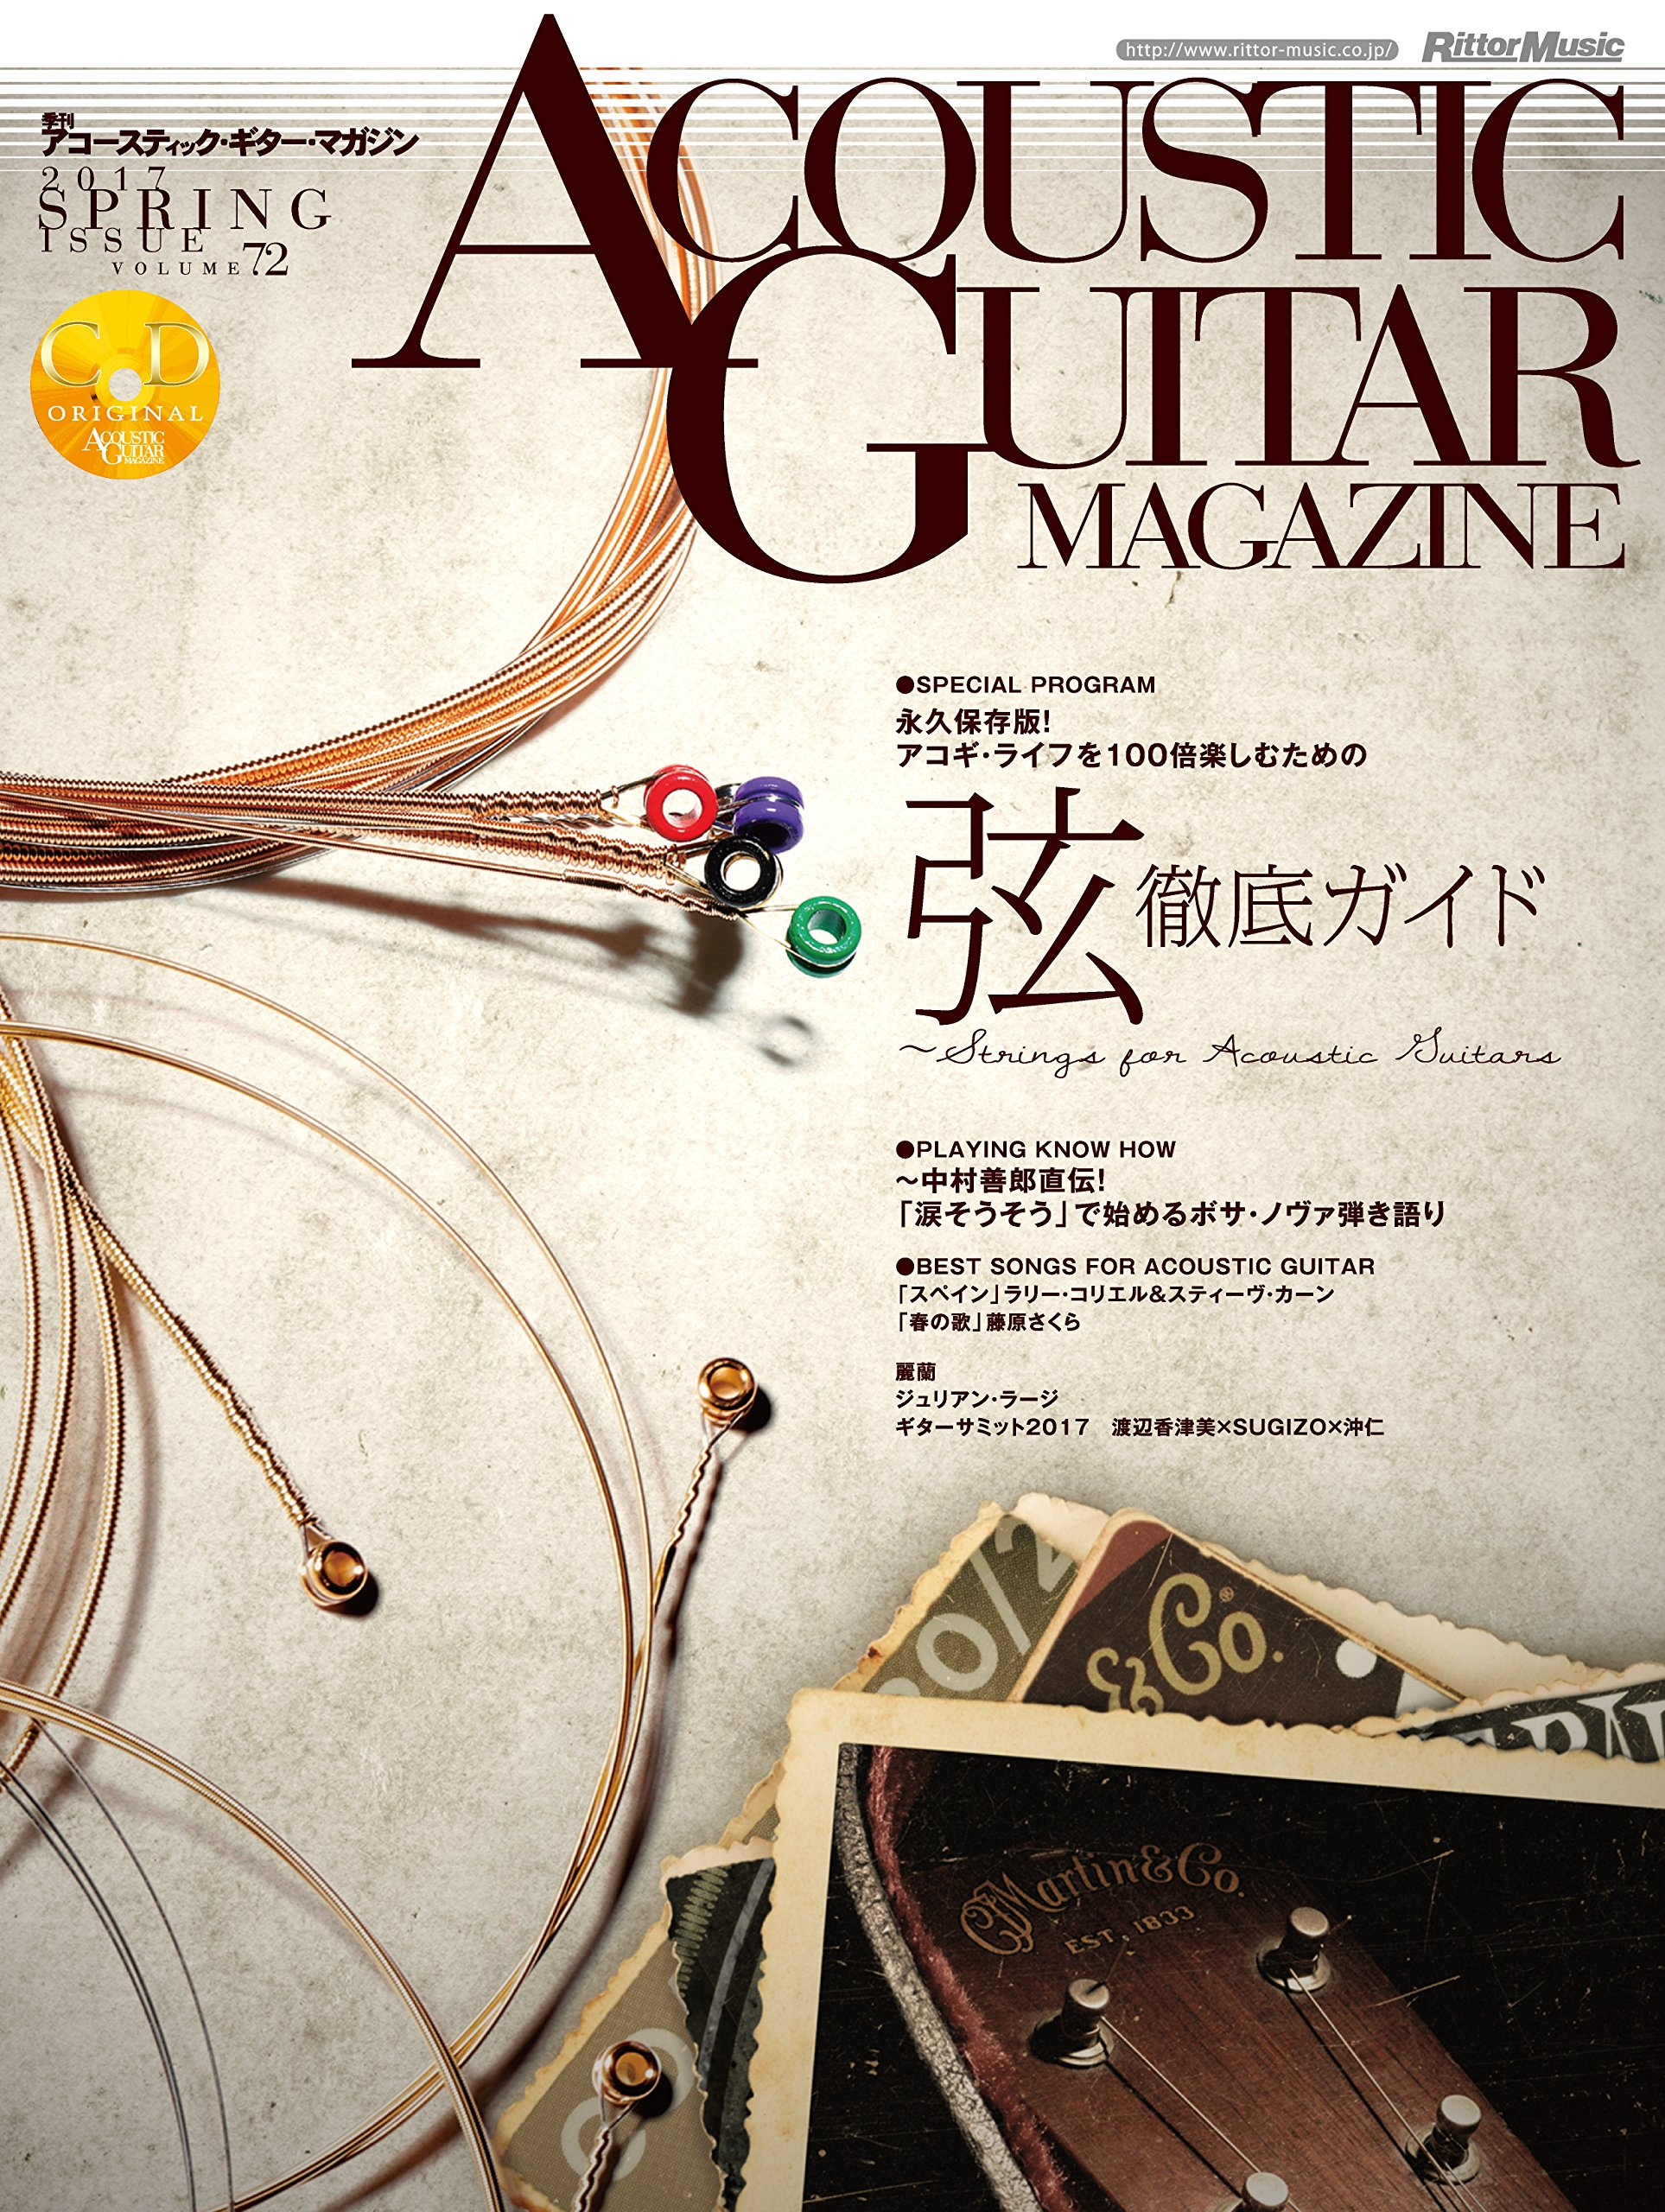 ACOUSTIC GUITAR MAGAZINE Vol.72